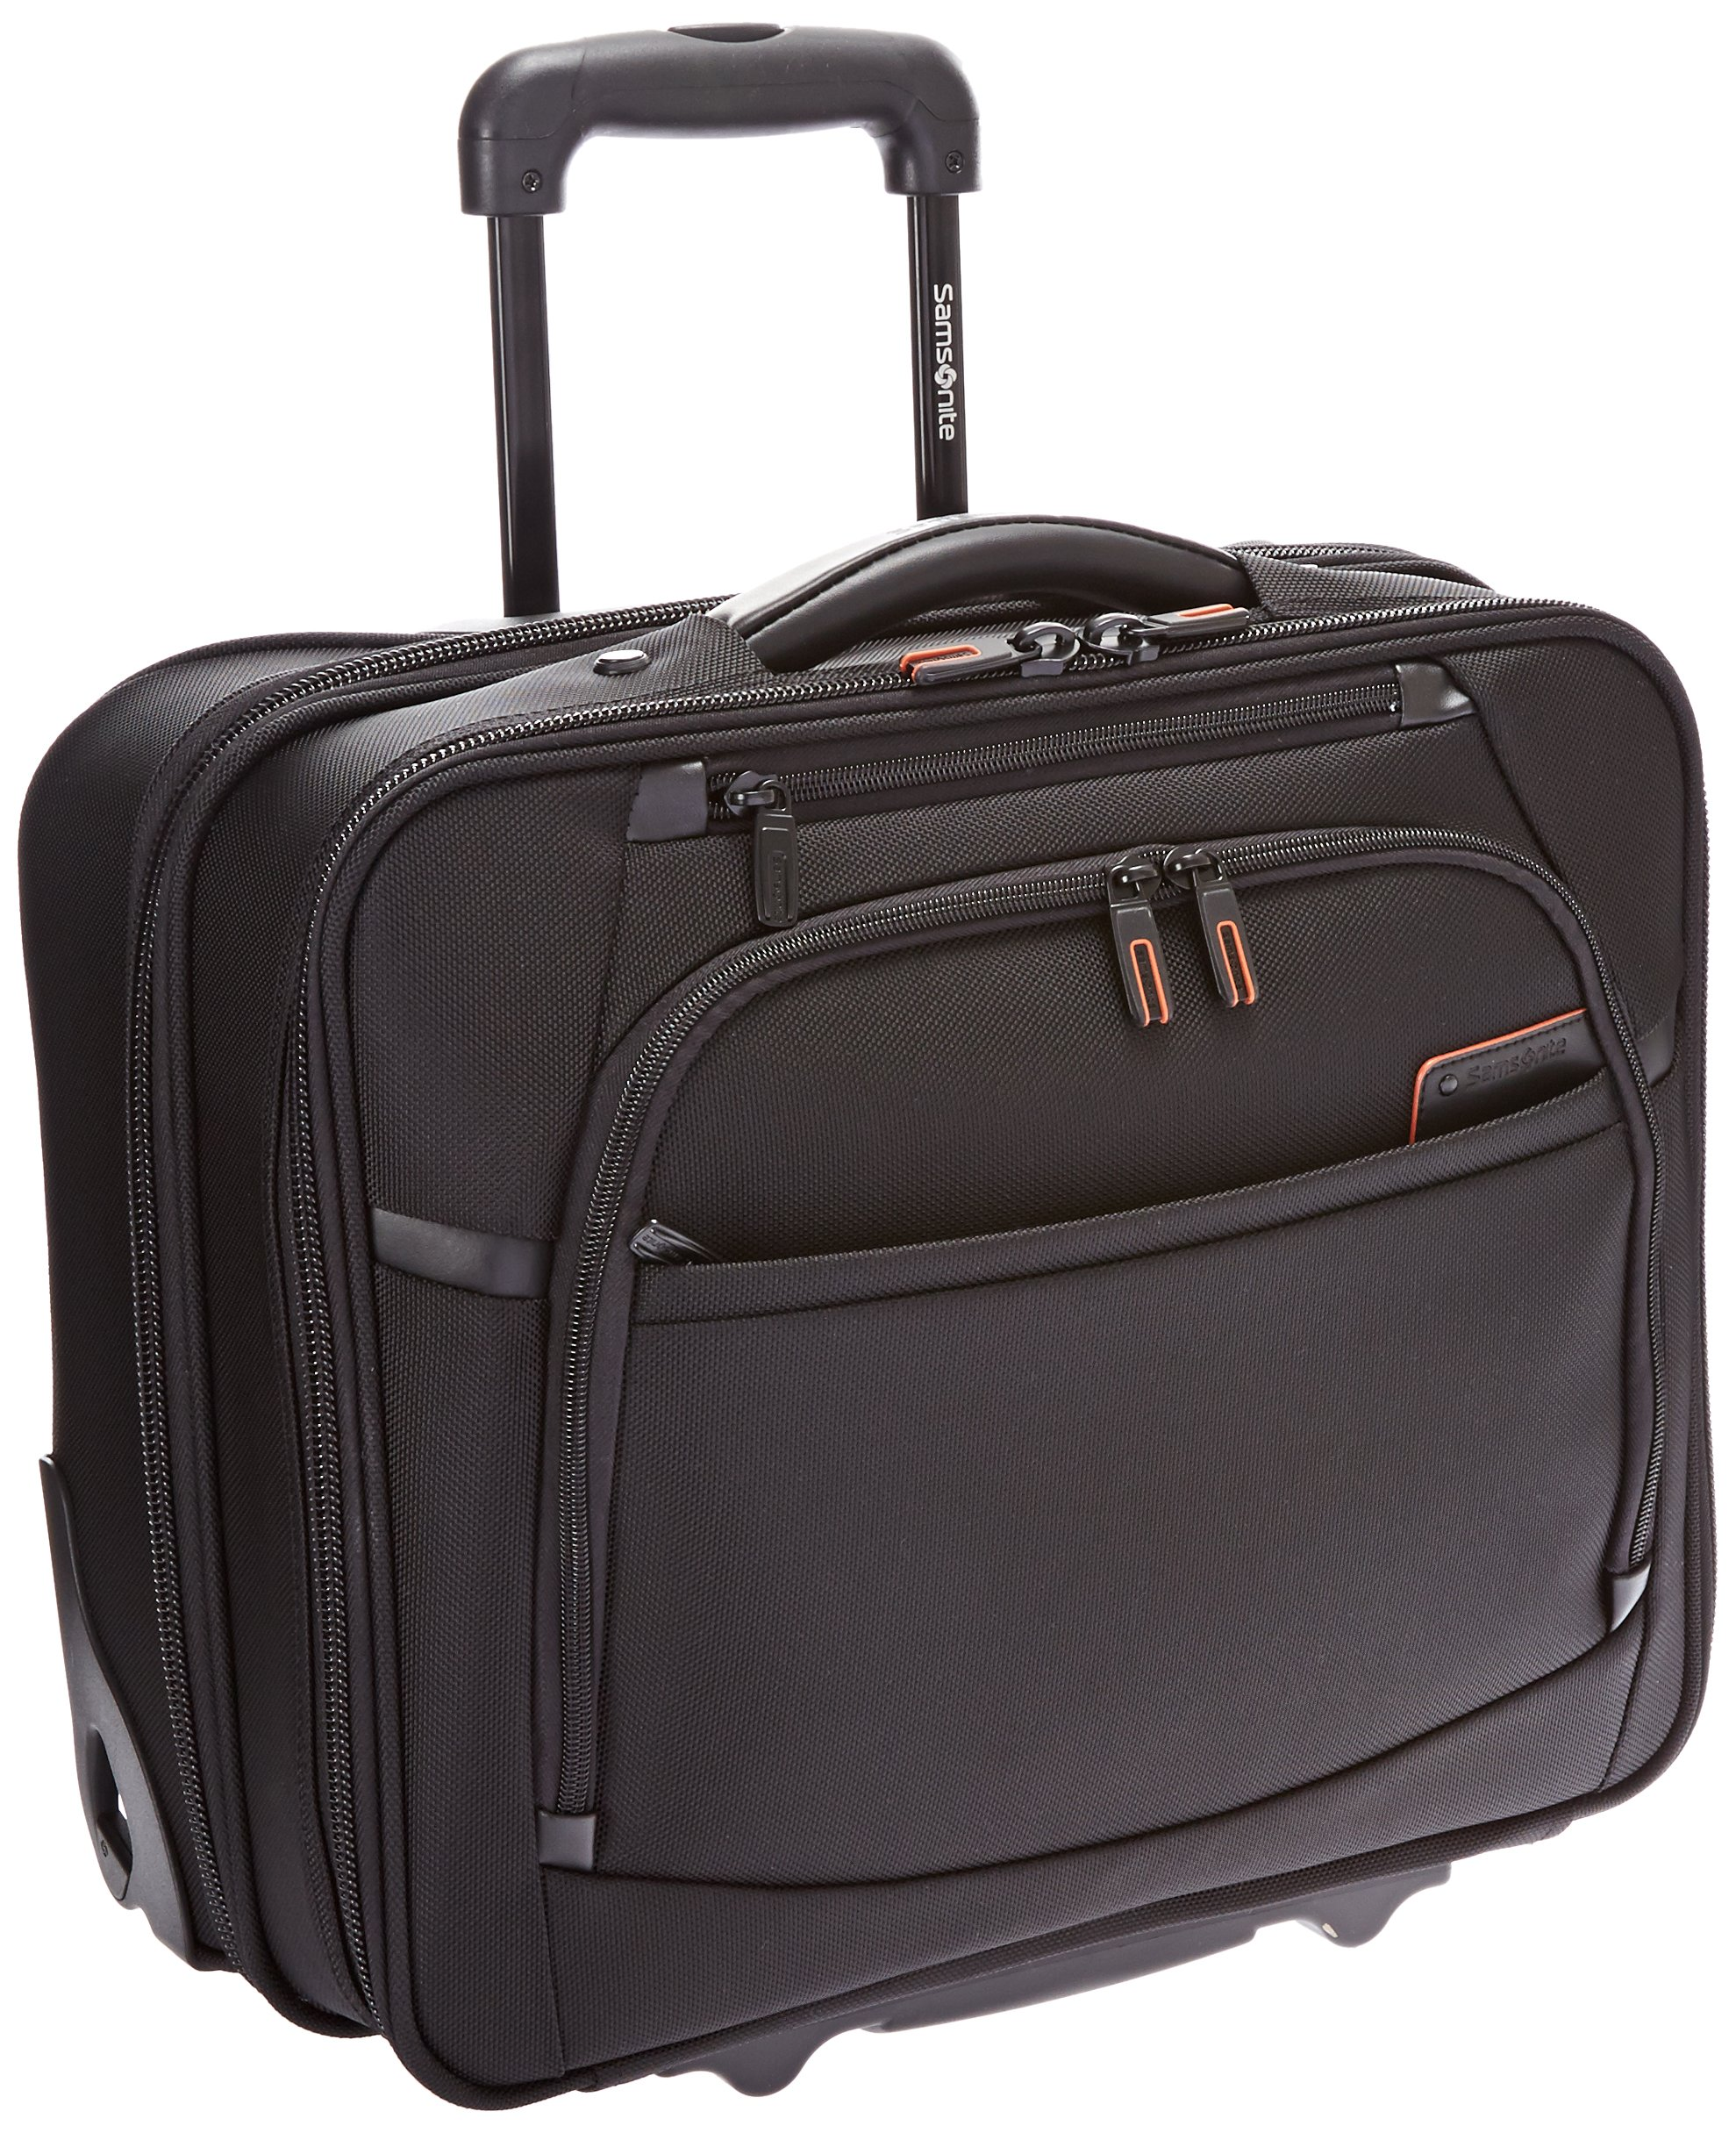 Samsonite Pro 4 DLX Mobile Office PFT, Black, One Size